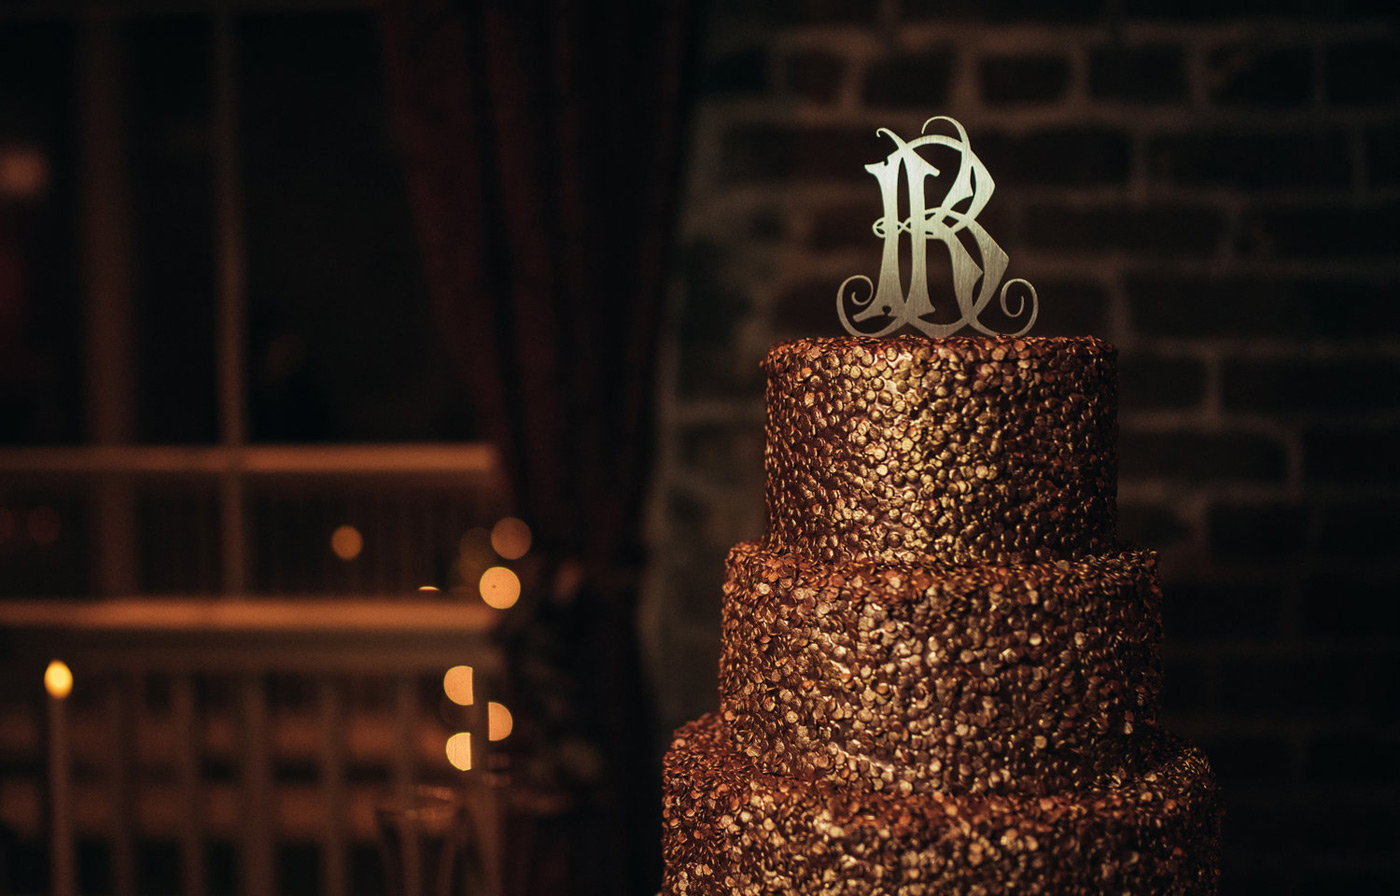 Shiny bright gold tiered wedding cake with a monogram on top